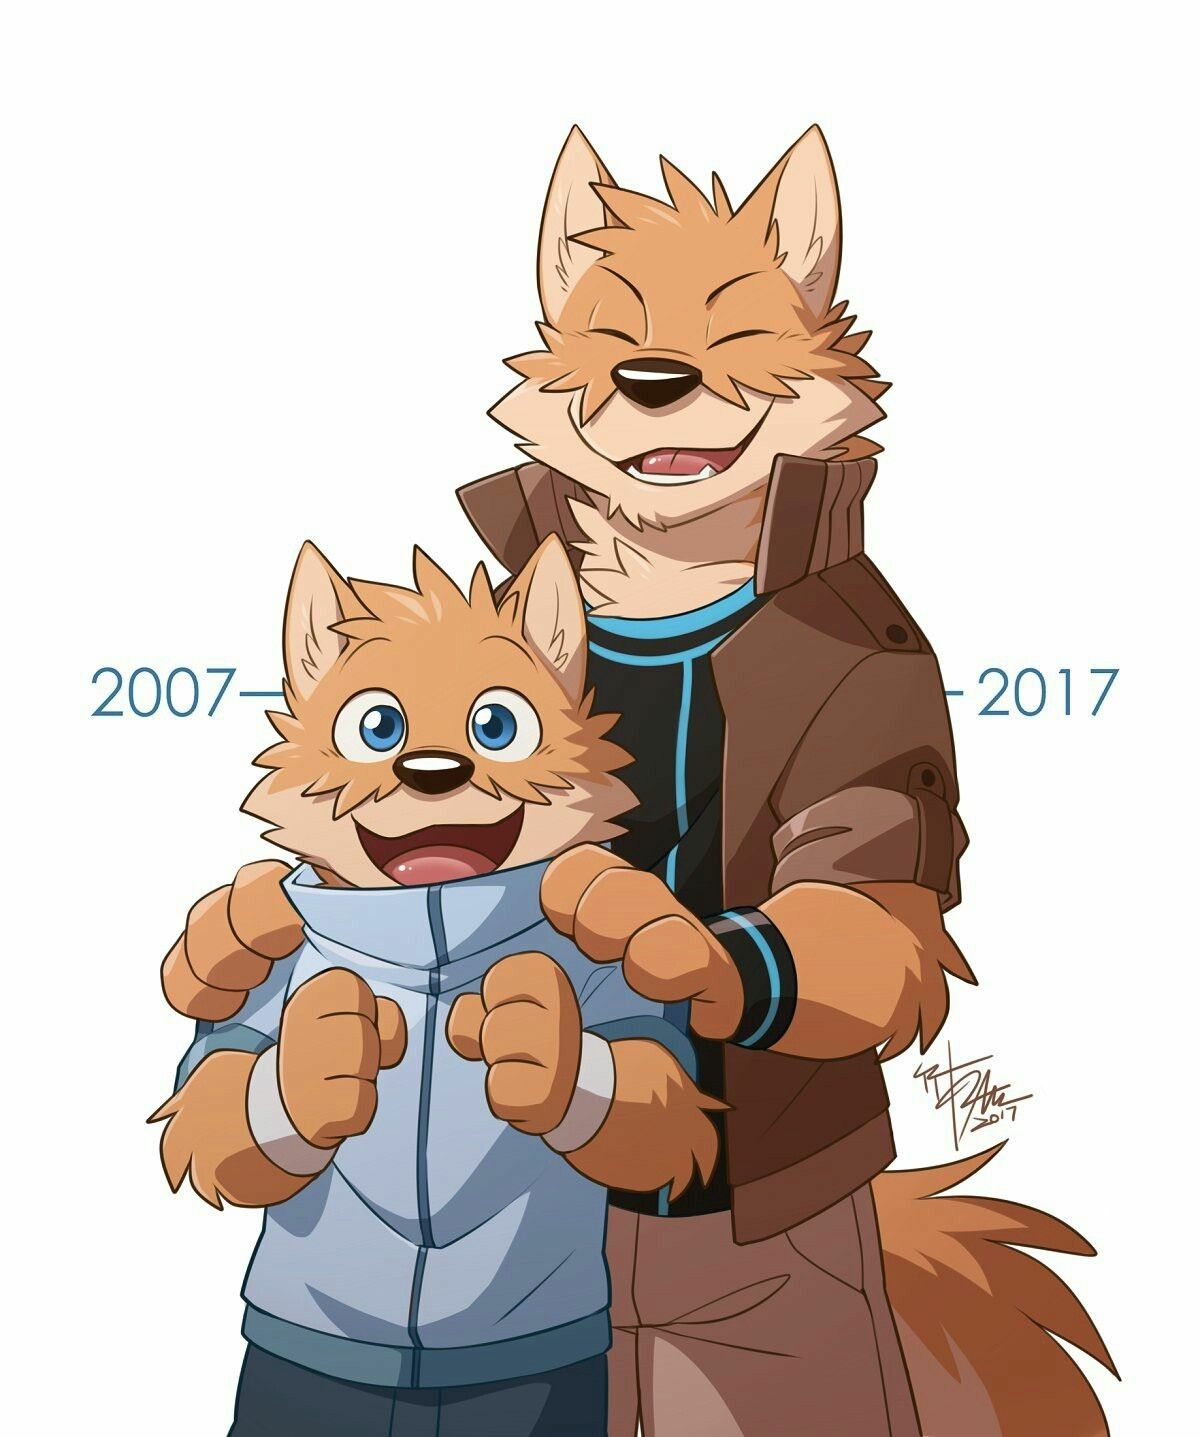 Pin on Furry couples ️